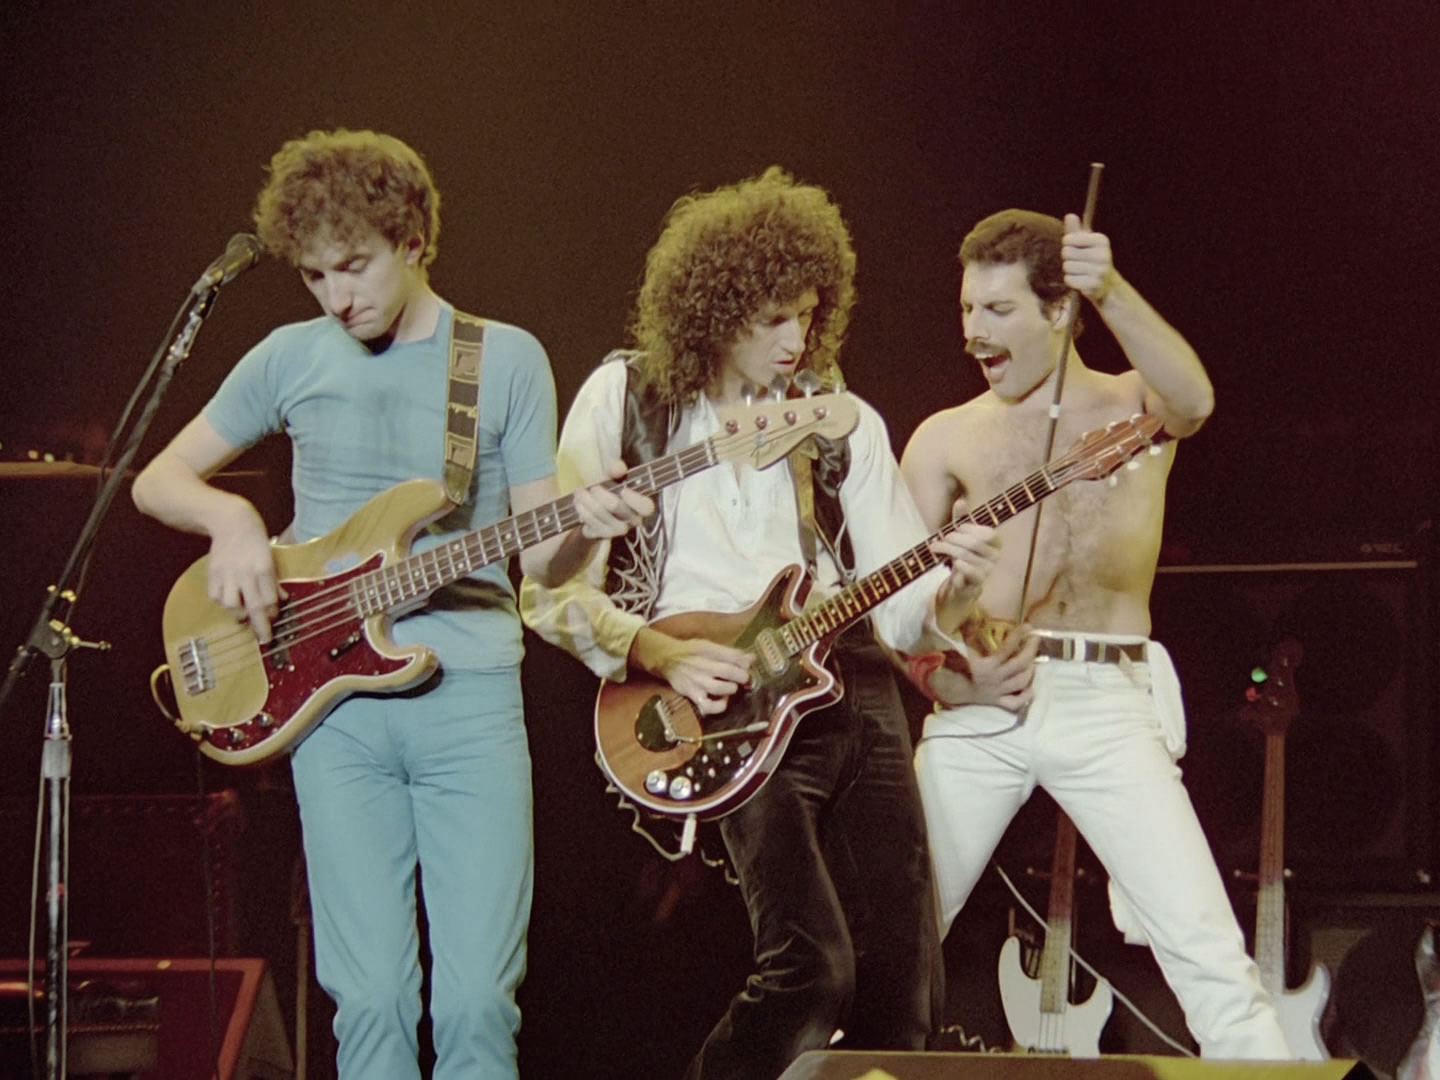 Queen performing live in Montreal, Canada